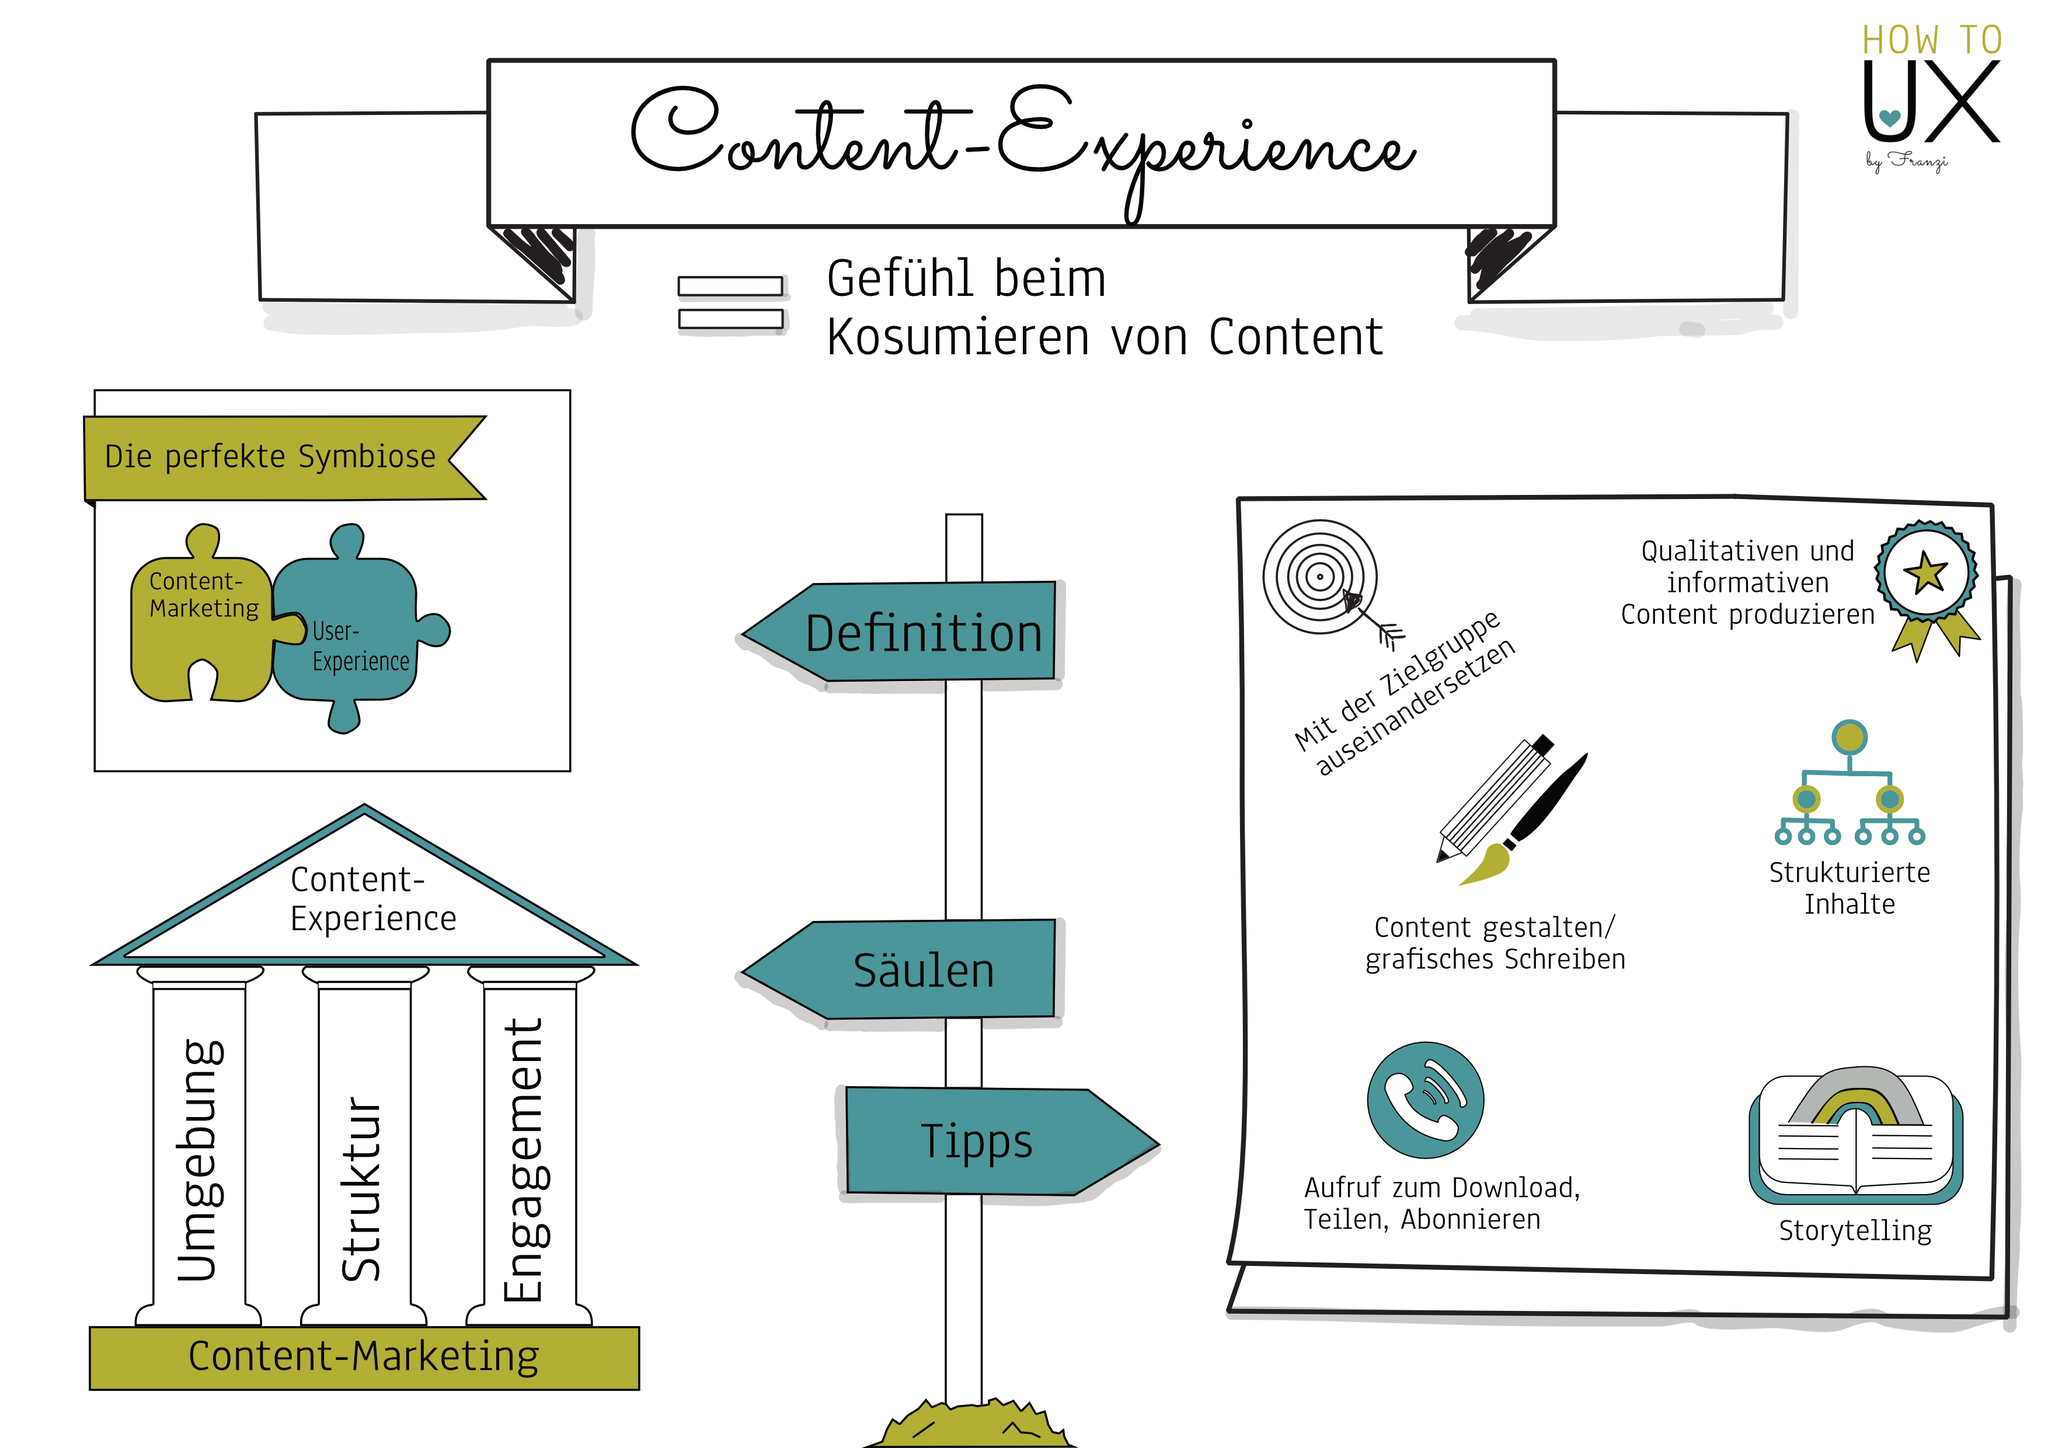 Content-Experience